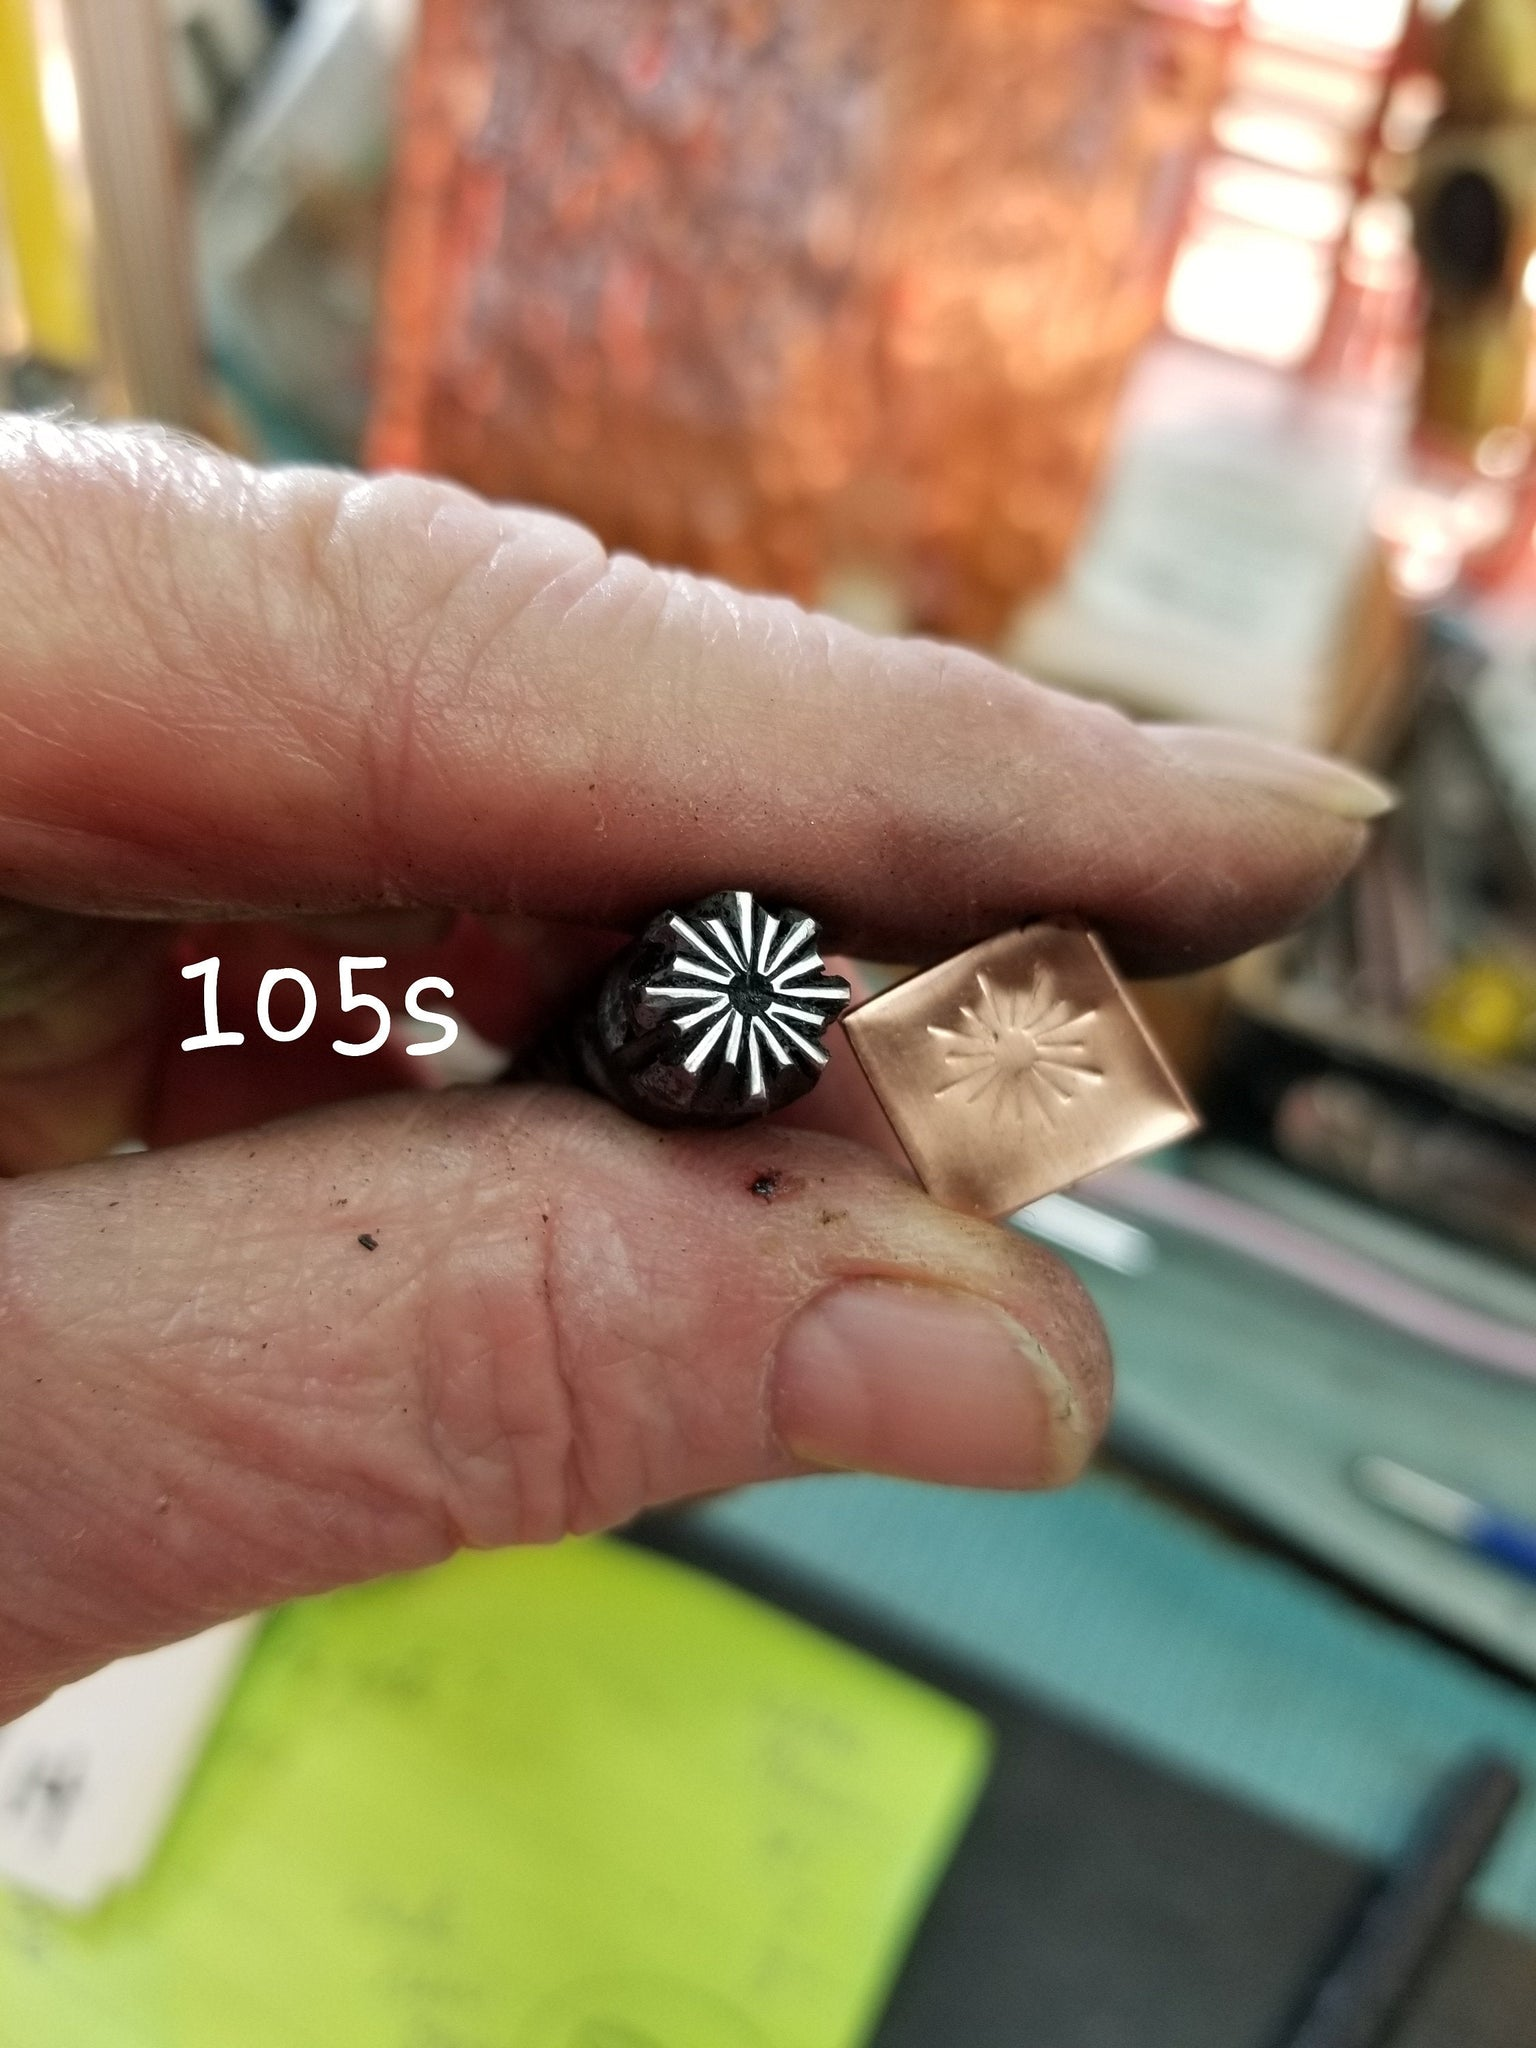 UST10. UNIQUE metal stamps for jewelry - leather stamps - jewelry stamps - metal punch - Red Dirt Diva